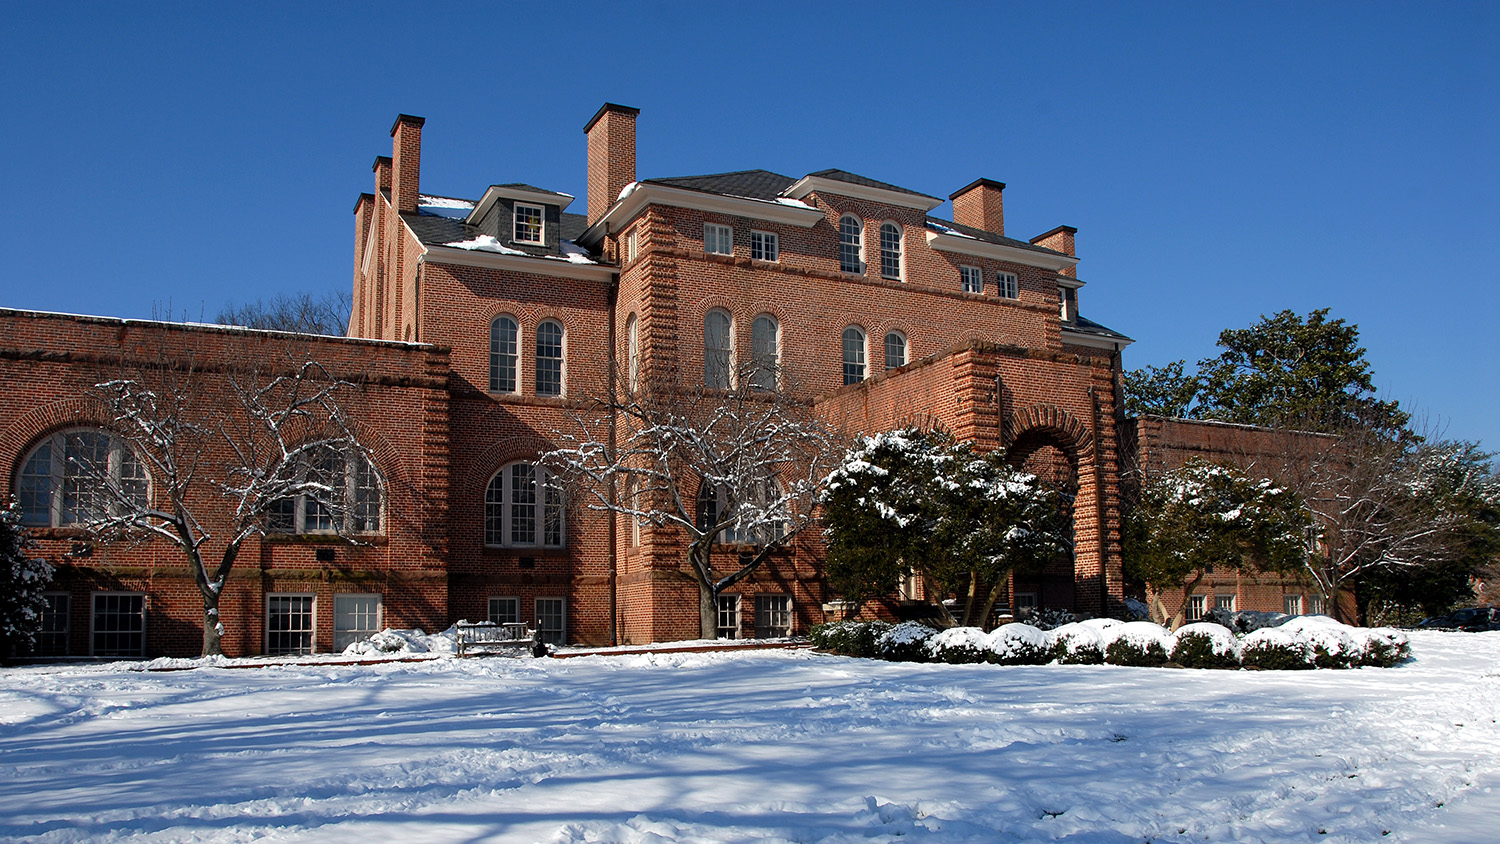 Holladay Hall on a snowy day